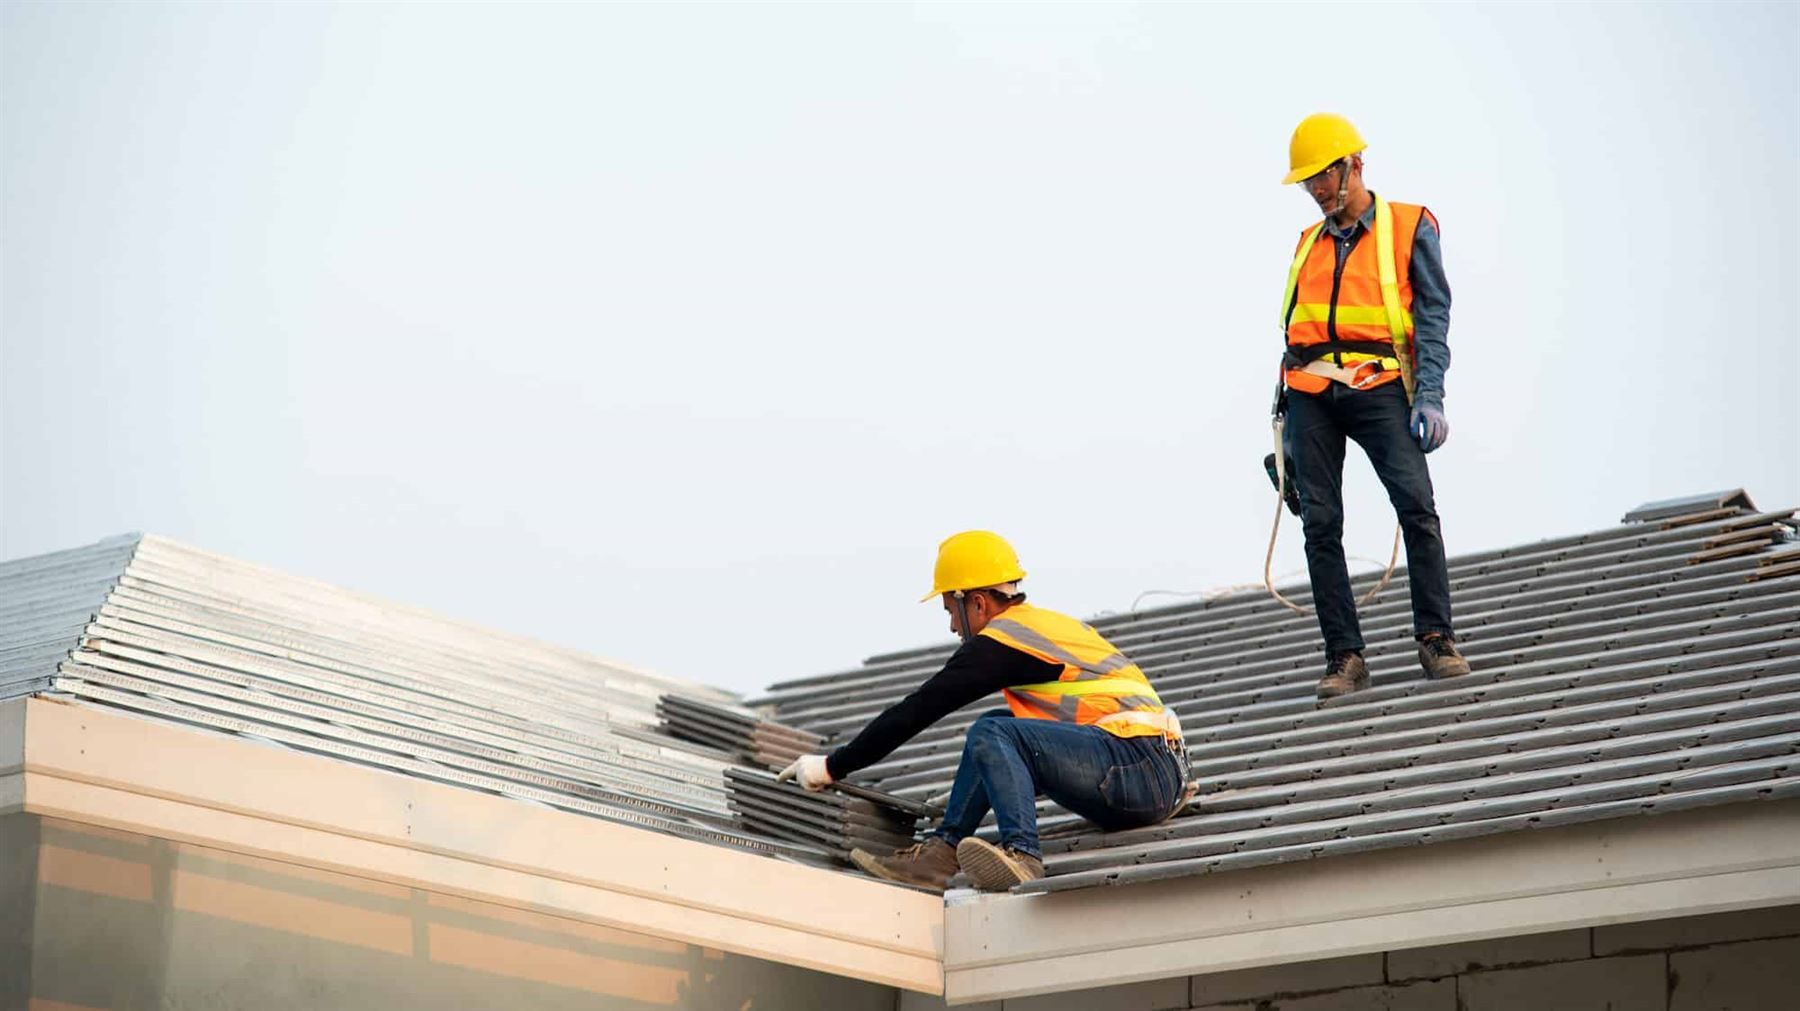 Pristine Roofing & Gutters of Colorado Springs